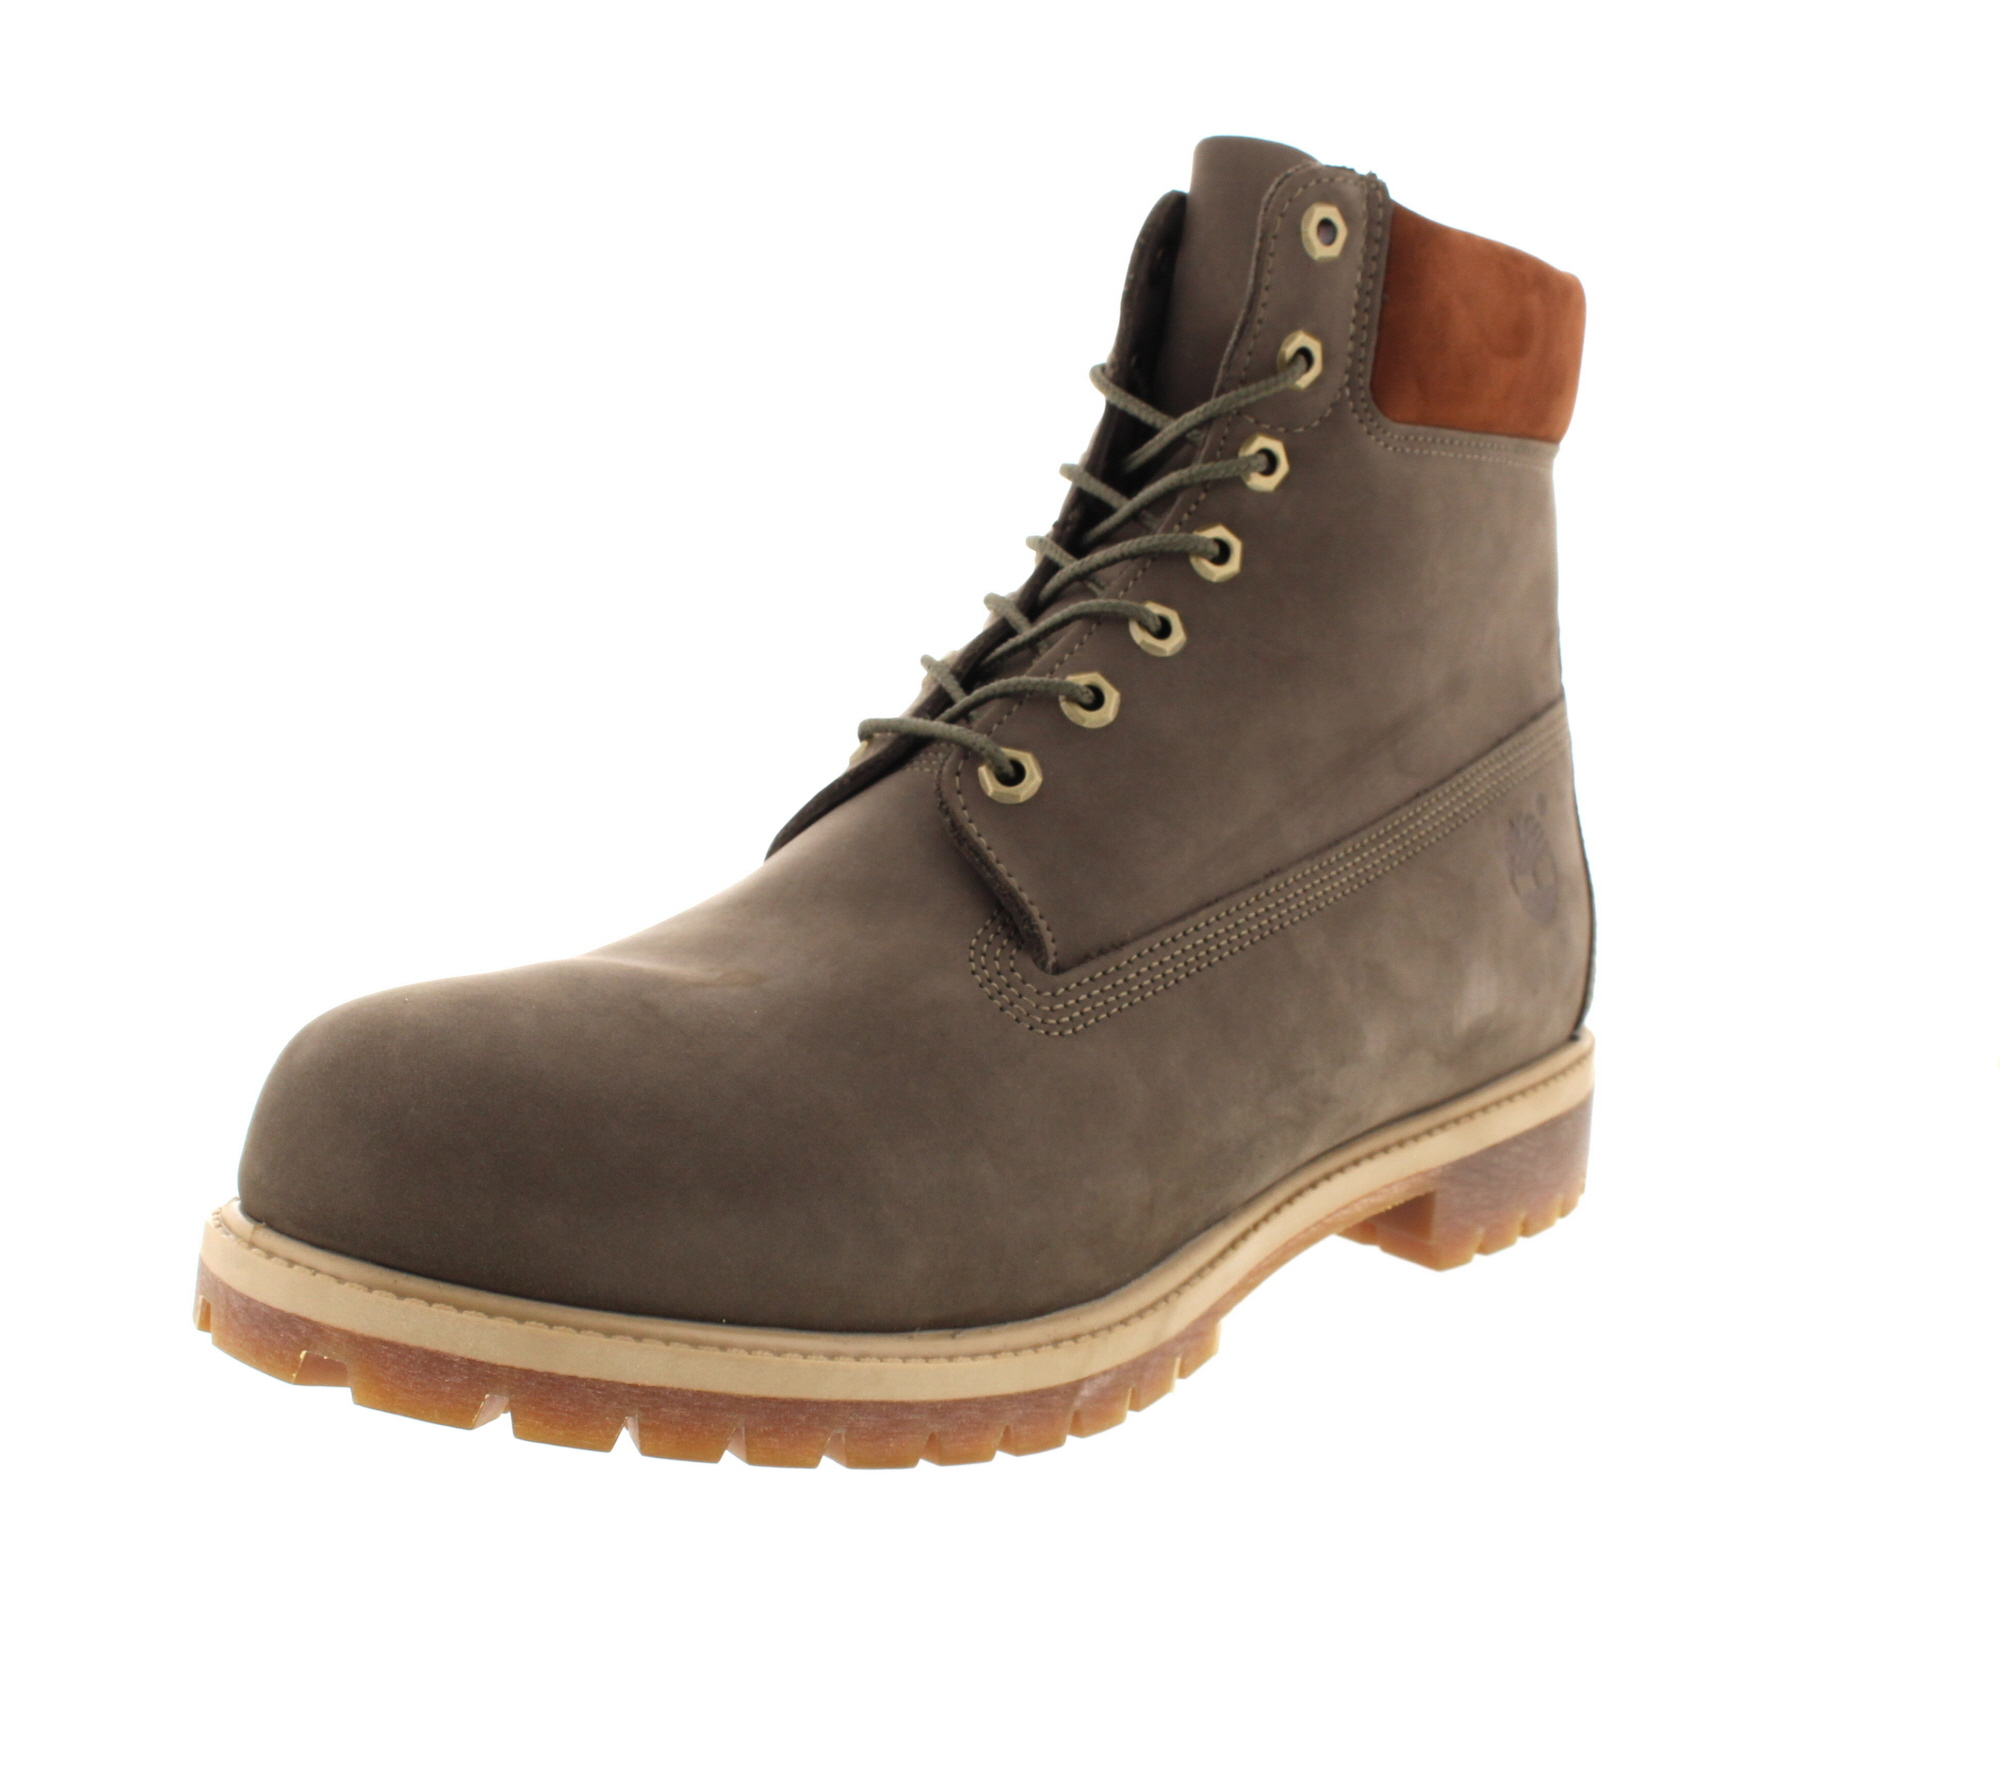 TIMBERLAND in Übergröße 6 Inch Premium Boots A1LXJ olive